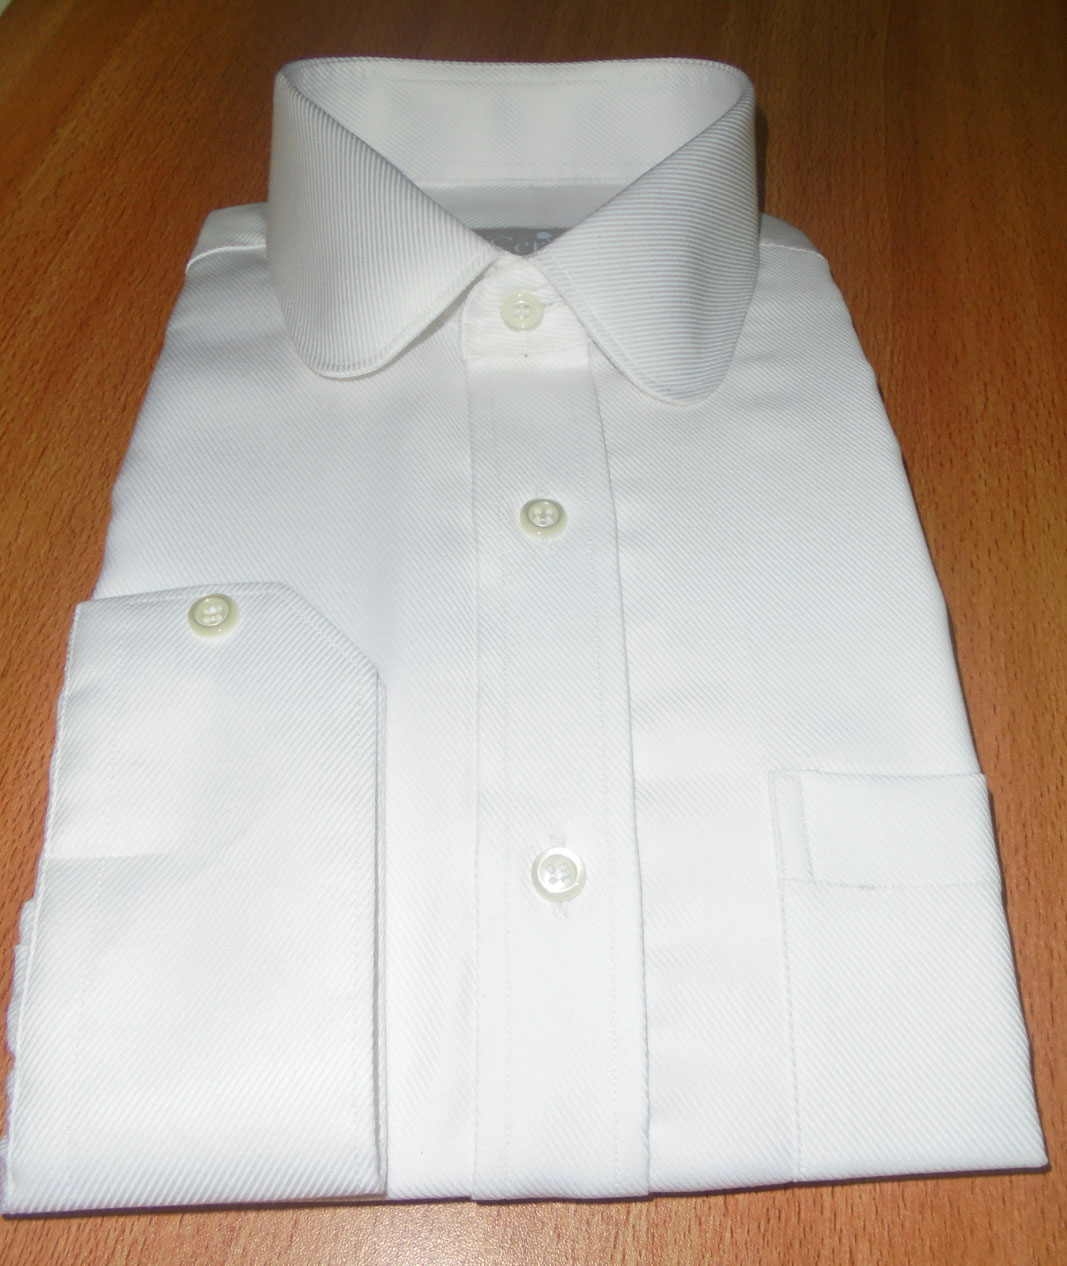 Vintage Eton Club Round Collar Twills Dress Shirt